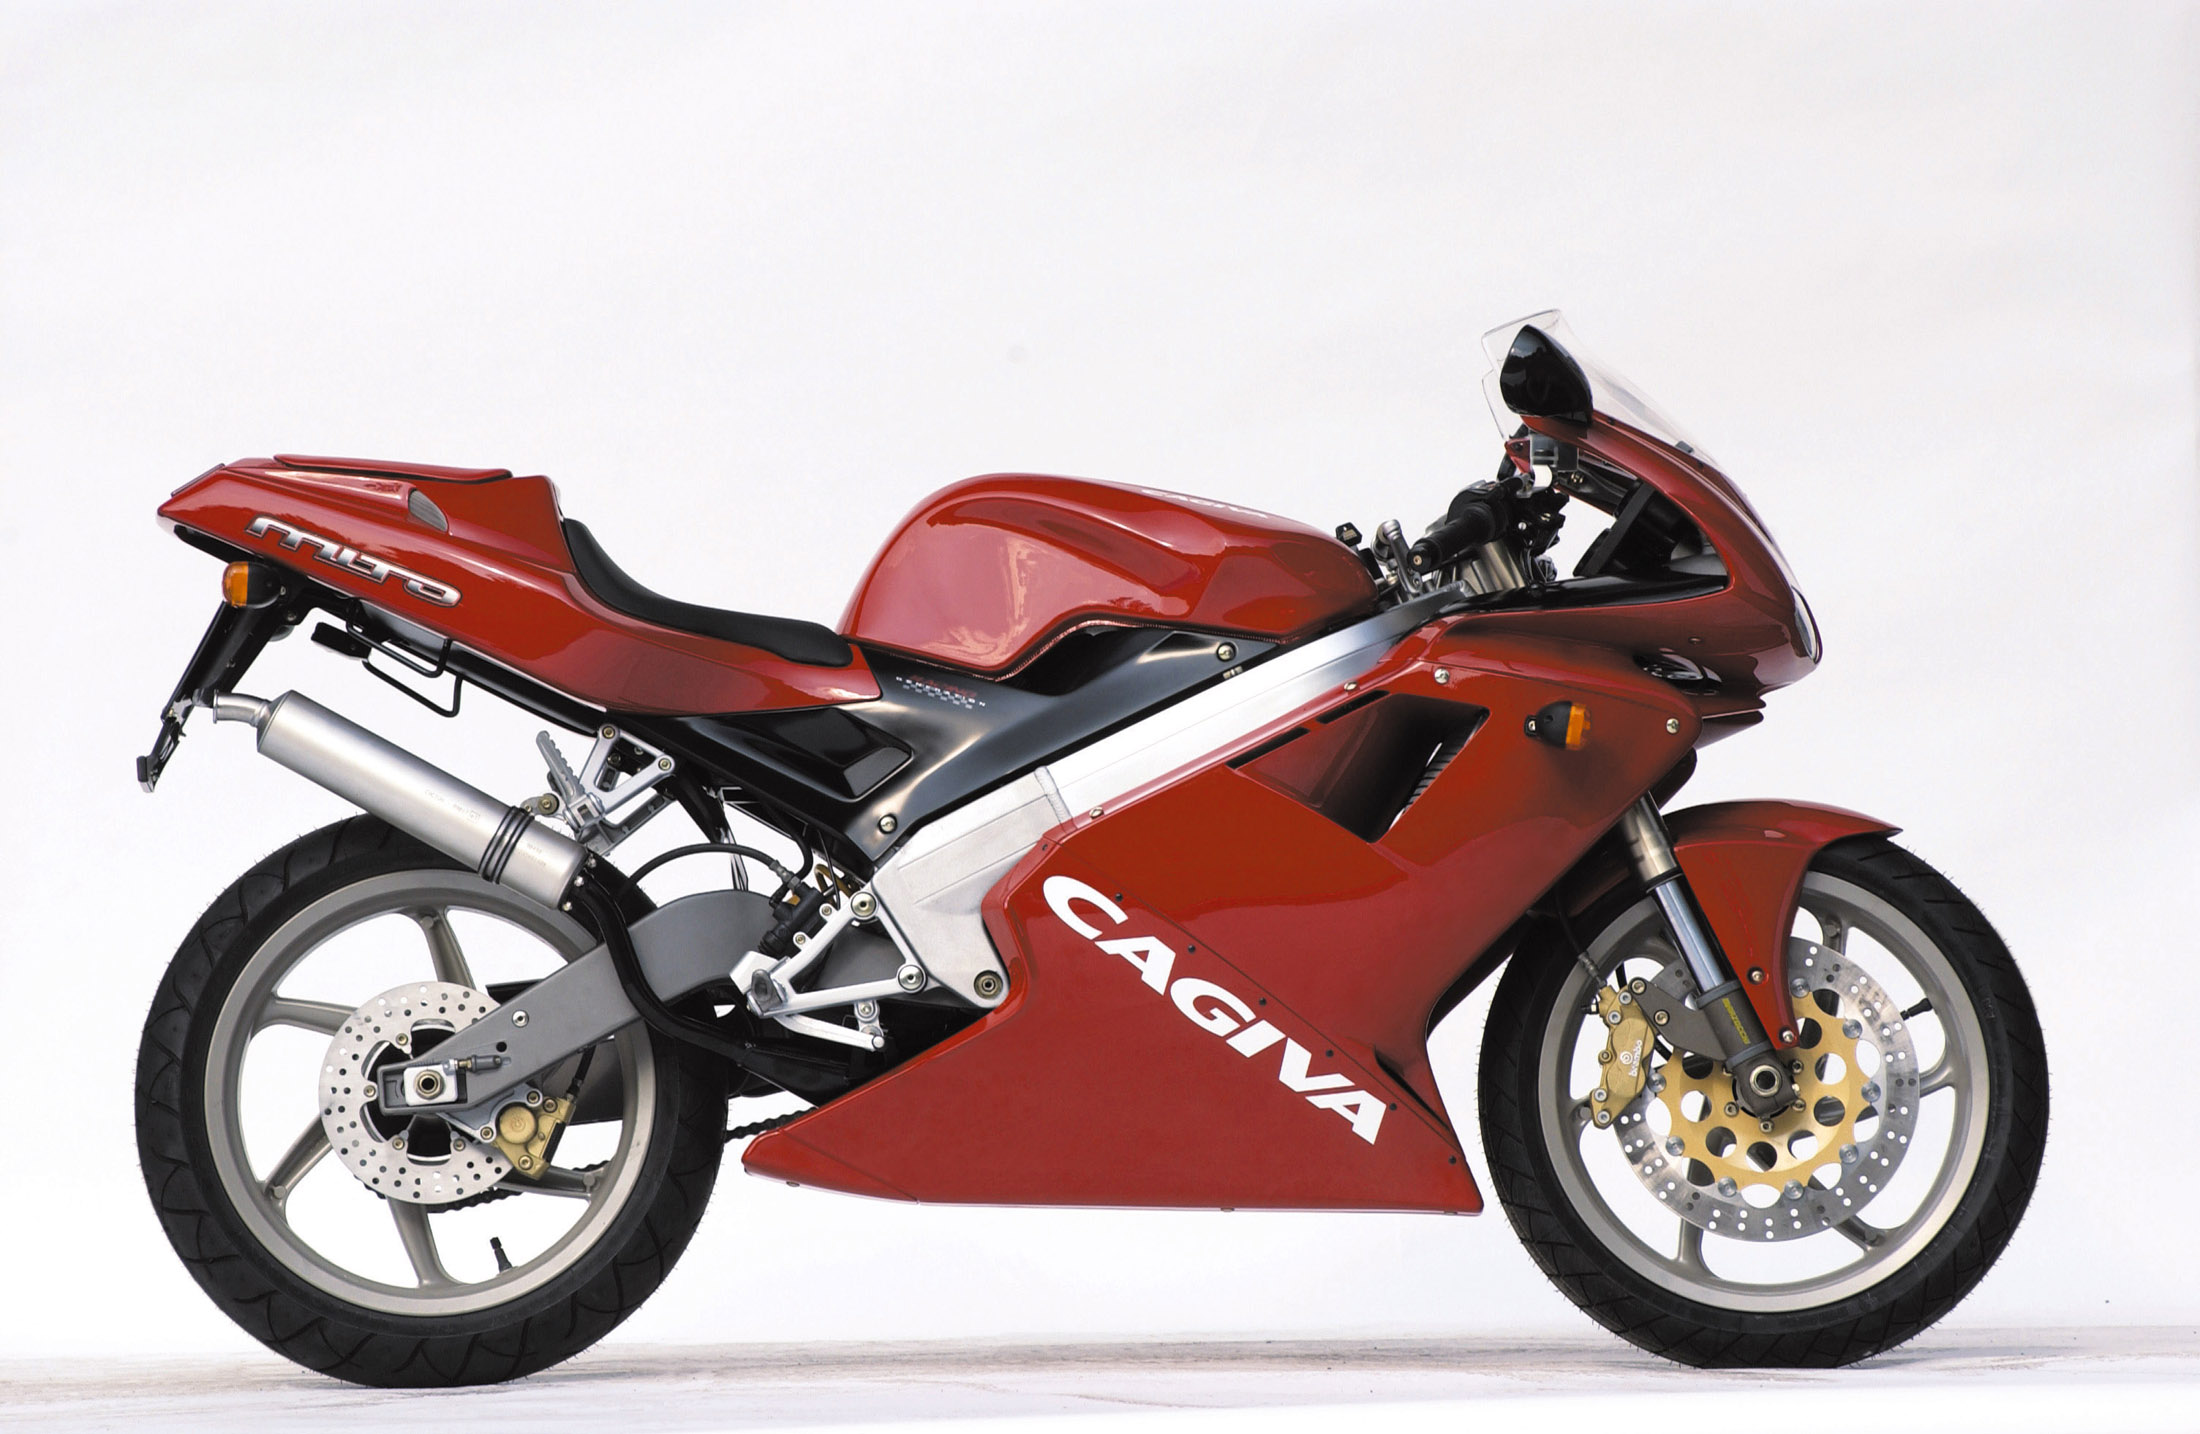 2006 cagiva mito 125 gallery 52566 top speed. Black Bedroom Furniture Sets. Home Design Ideas